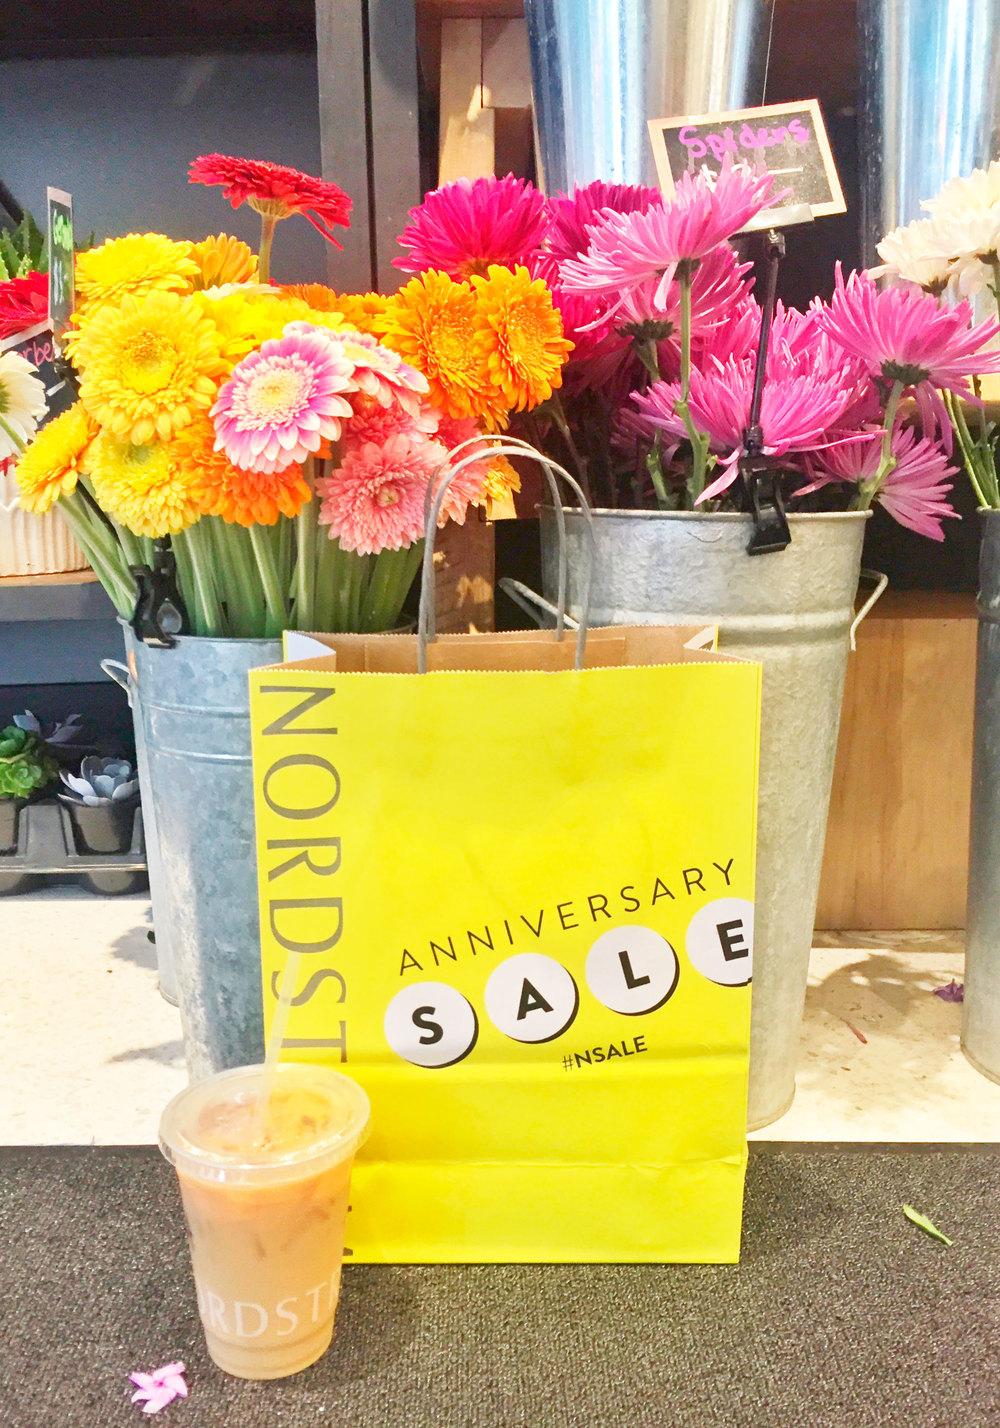 Nordstrom Anniversary Sale 2016, The best women's clothing, shoes, and accessories to scoop up now while they're on sale! #NSale